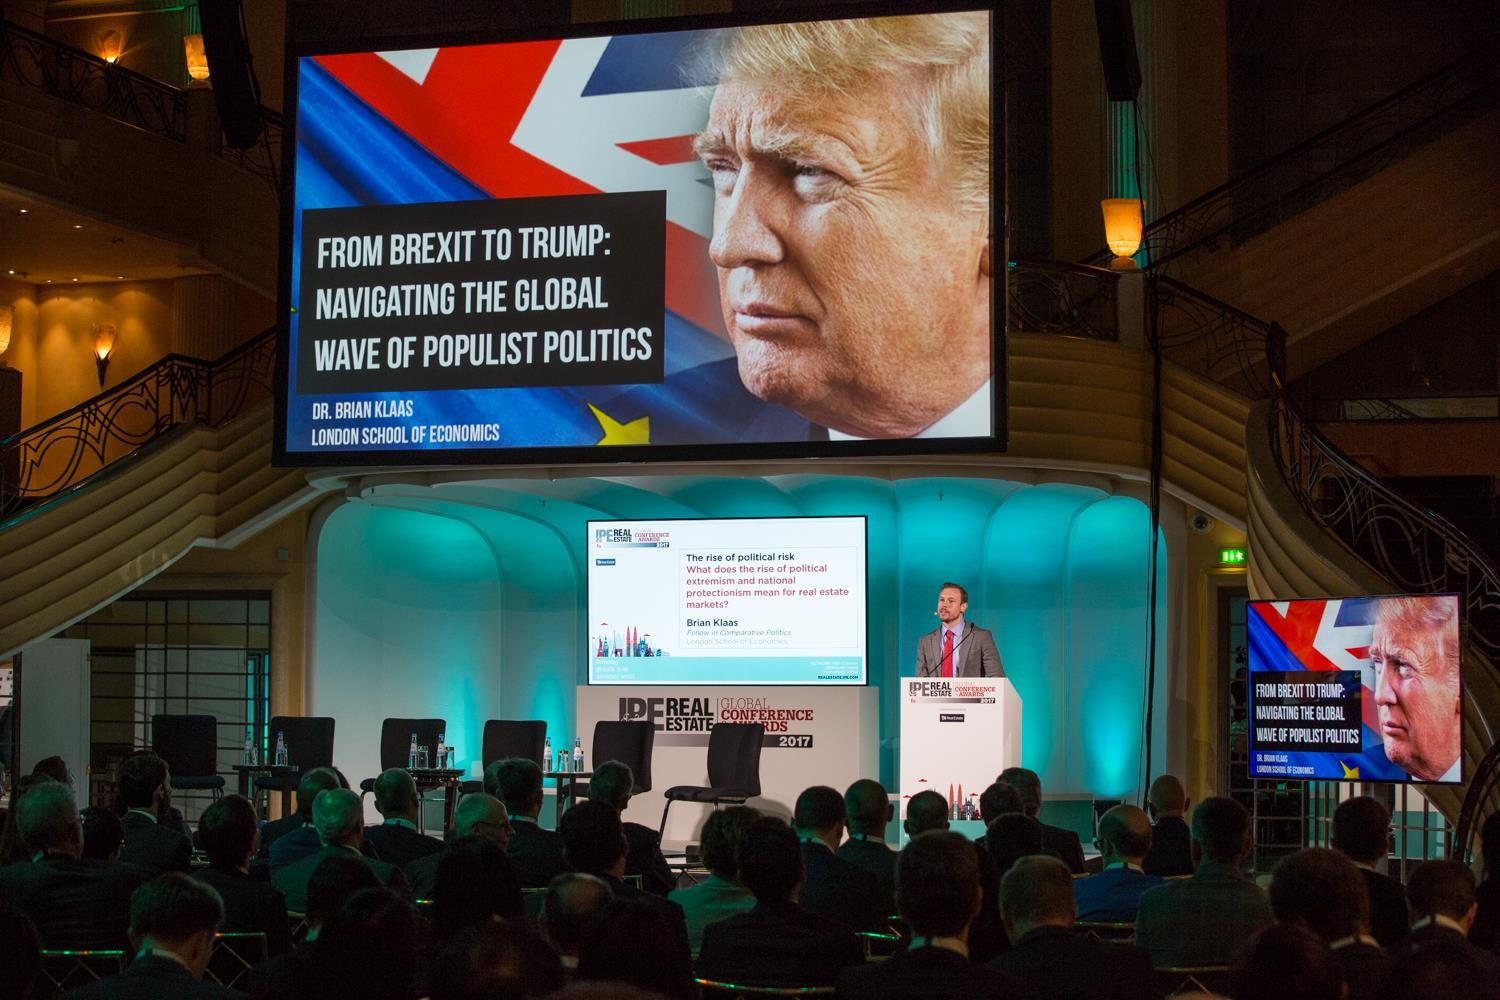 Brian Klass talks about global politics at the IPE Real Estate conference in Munich